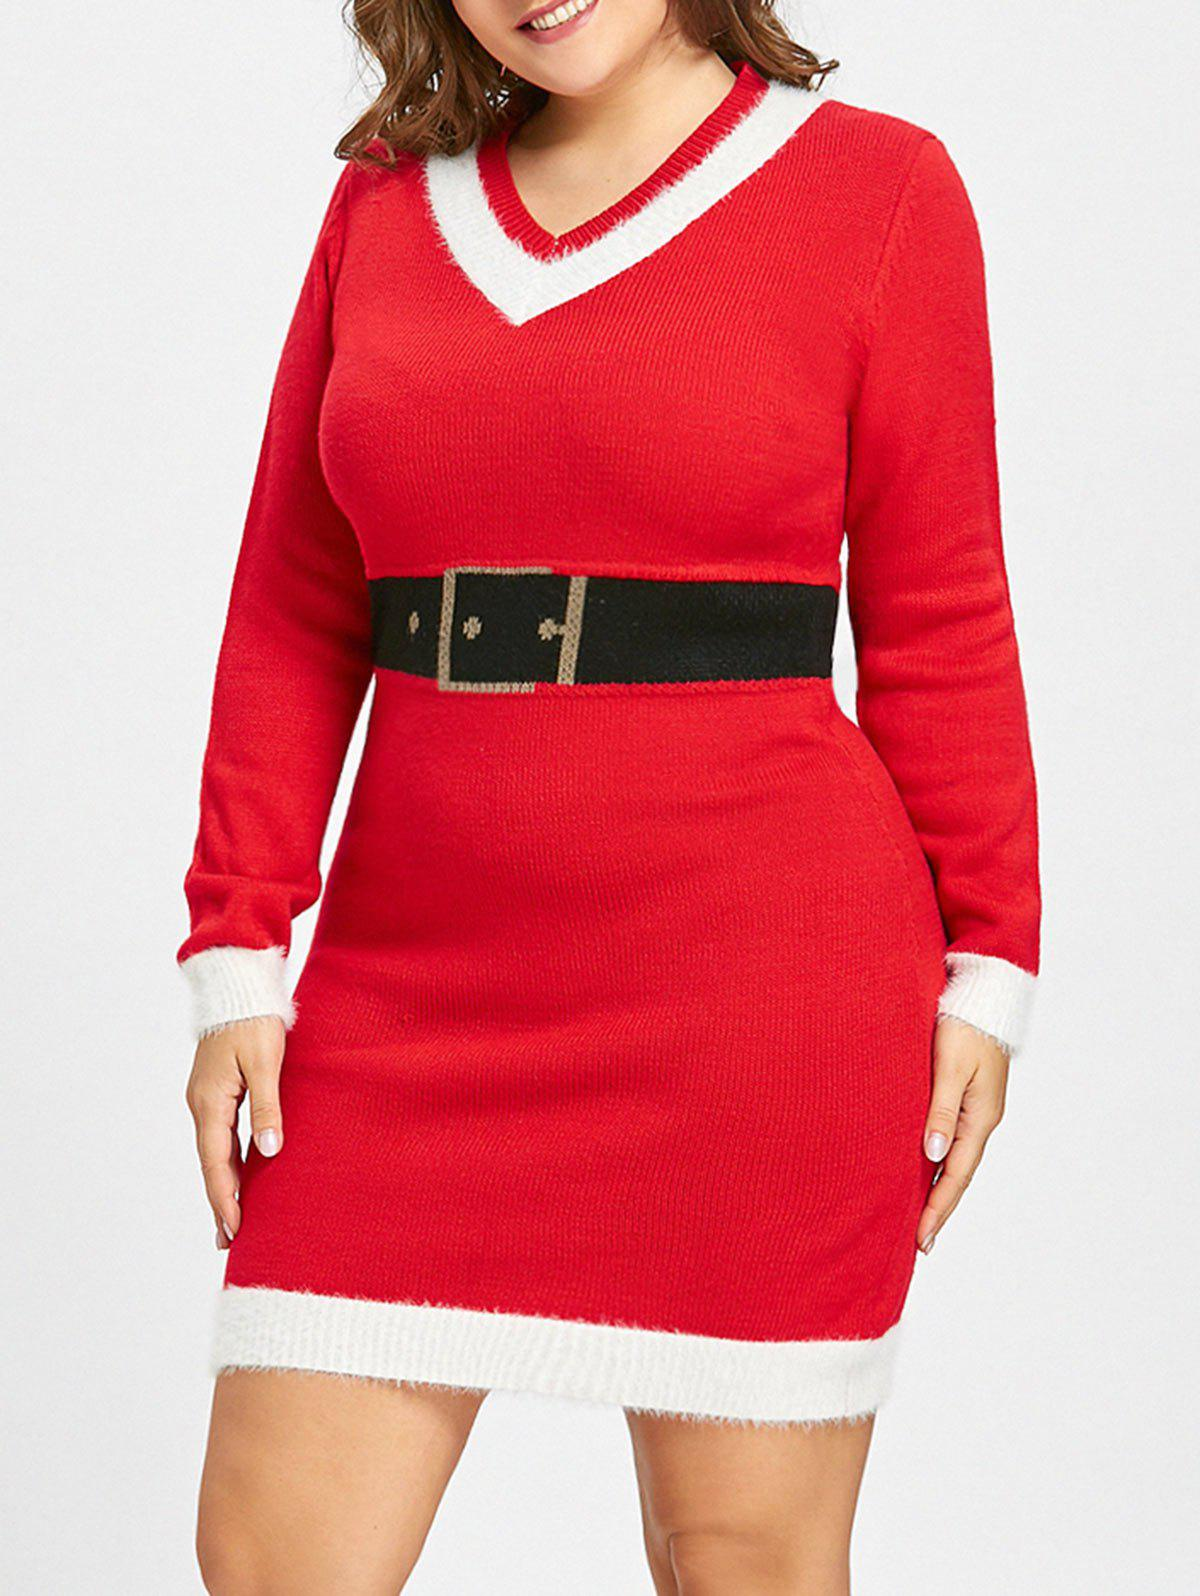 Christmas Plus Size Faux Belt Jacquard SweaterWOMEN<br><br>Size: 4XL; Color: RED; Type: Pullovers; Material: Acrylic; Sleeve Length: Full; Collar: V-Neck; Style: Fashion; Season: Fall,Winter; Pattern Type: Others; Weight: 0.5300kg; Package Contents: 1 x Sweater;